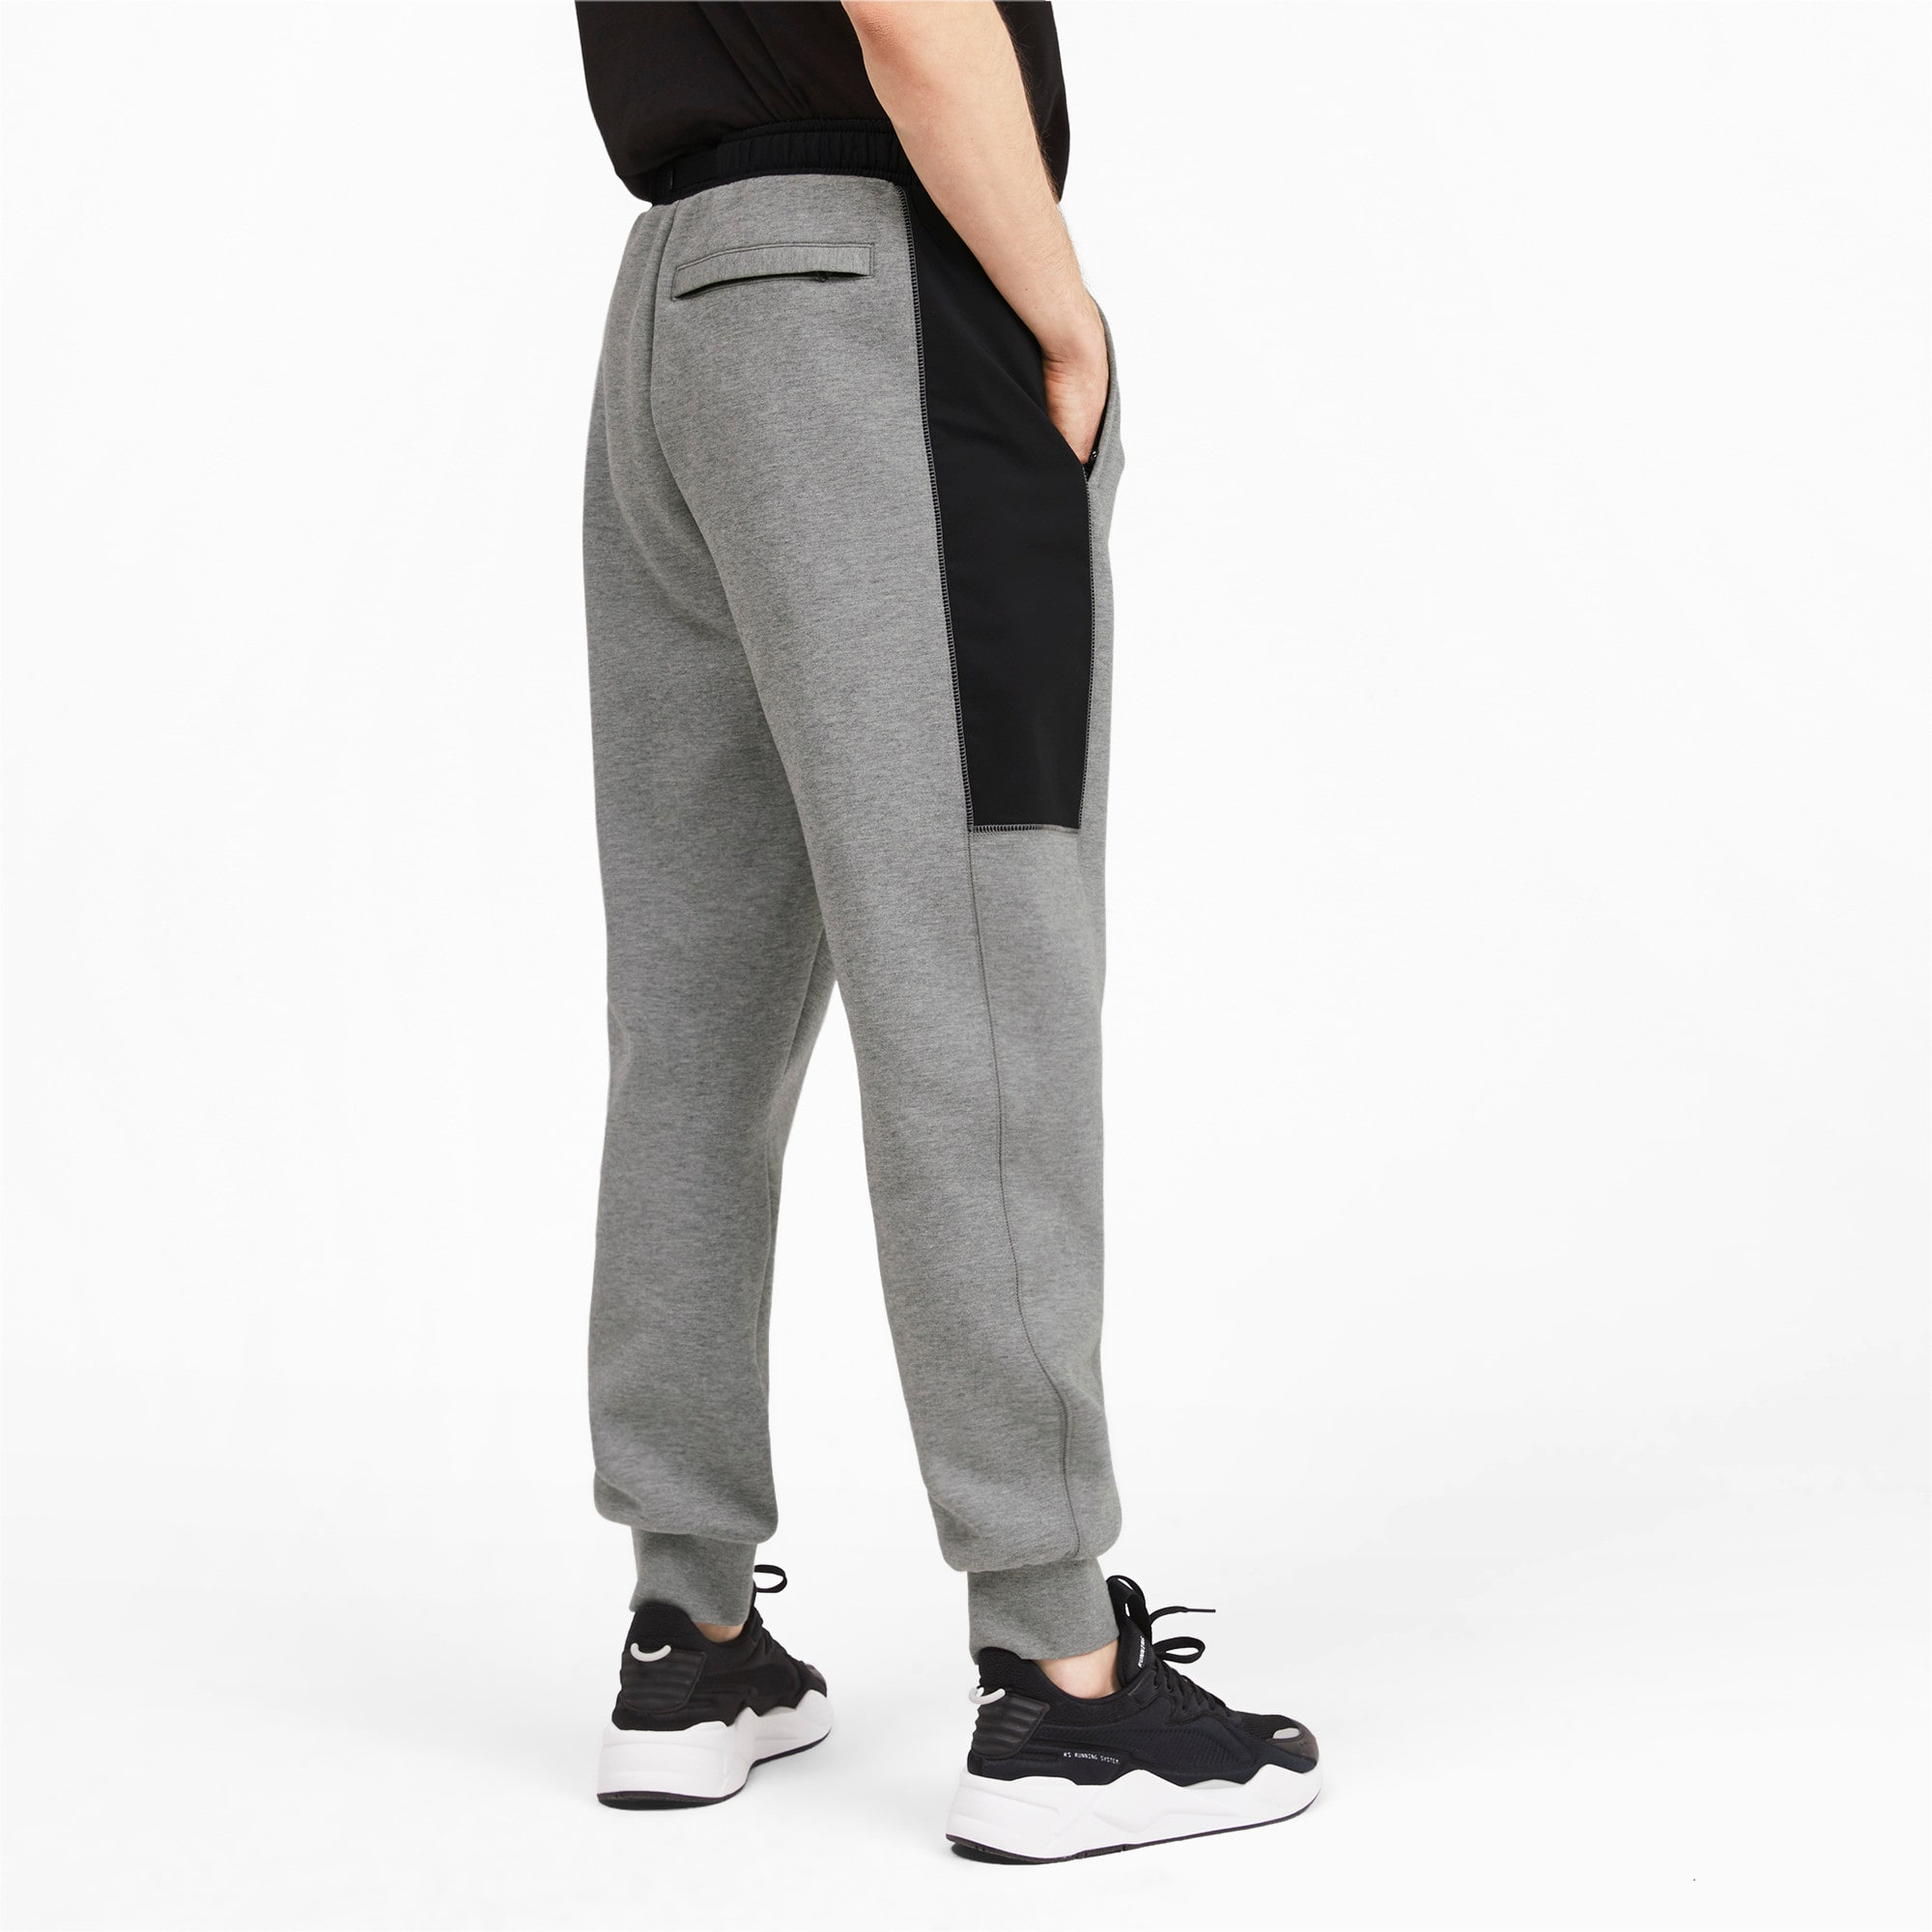 Thumbnail 3 of Epoch Hybrid Men's Sweatpants, Medium Gray Heather, medium